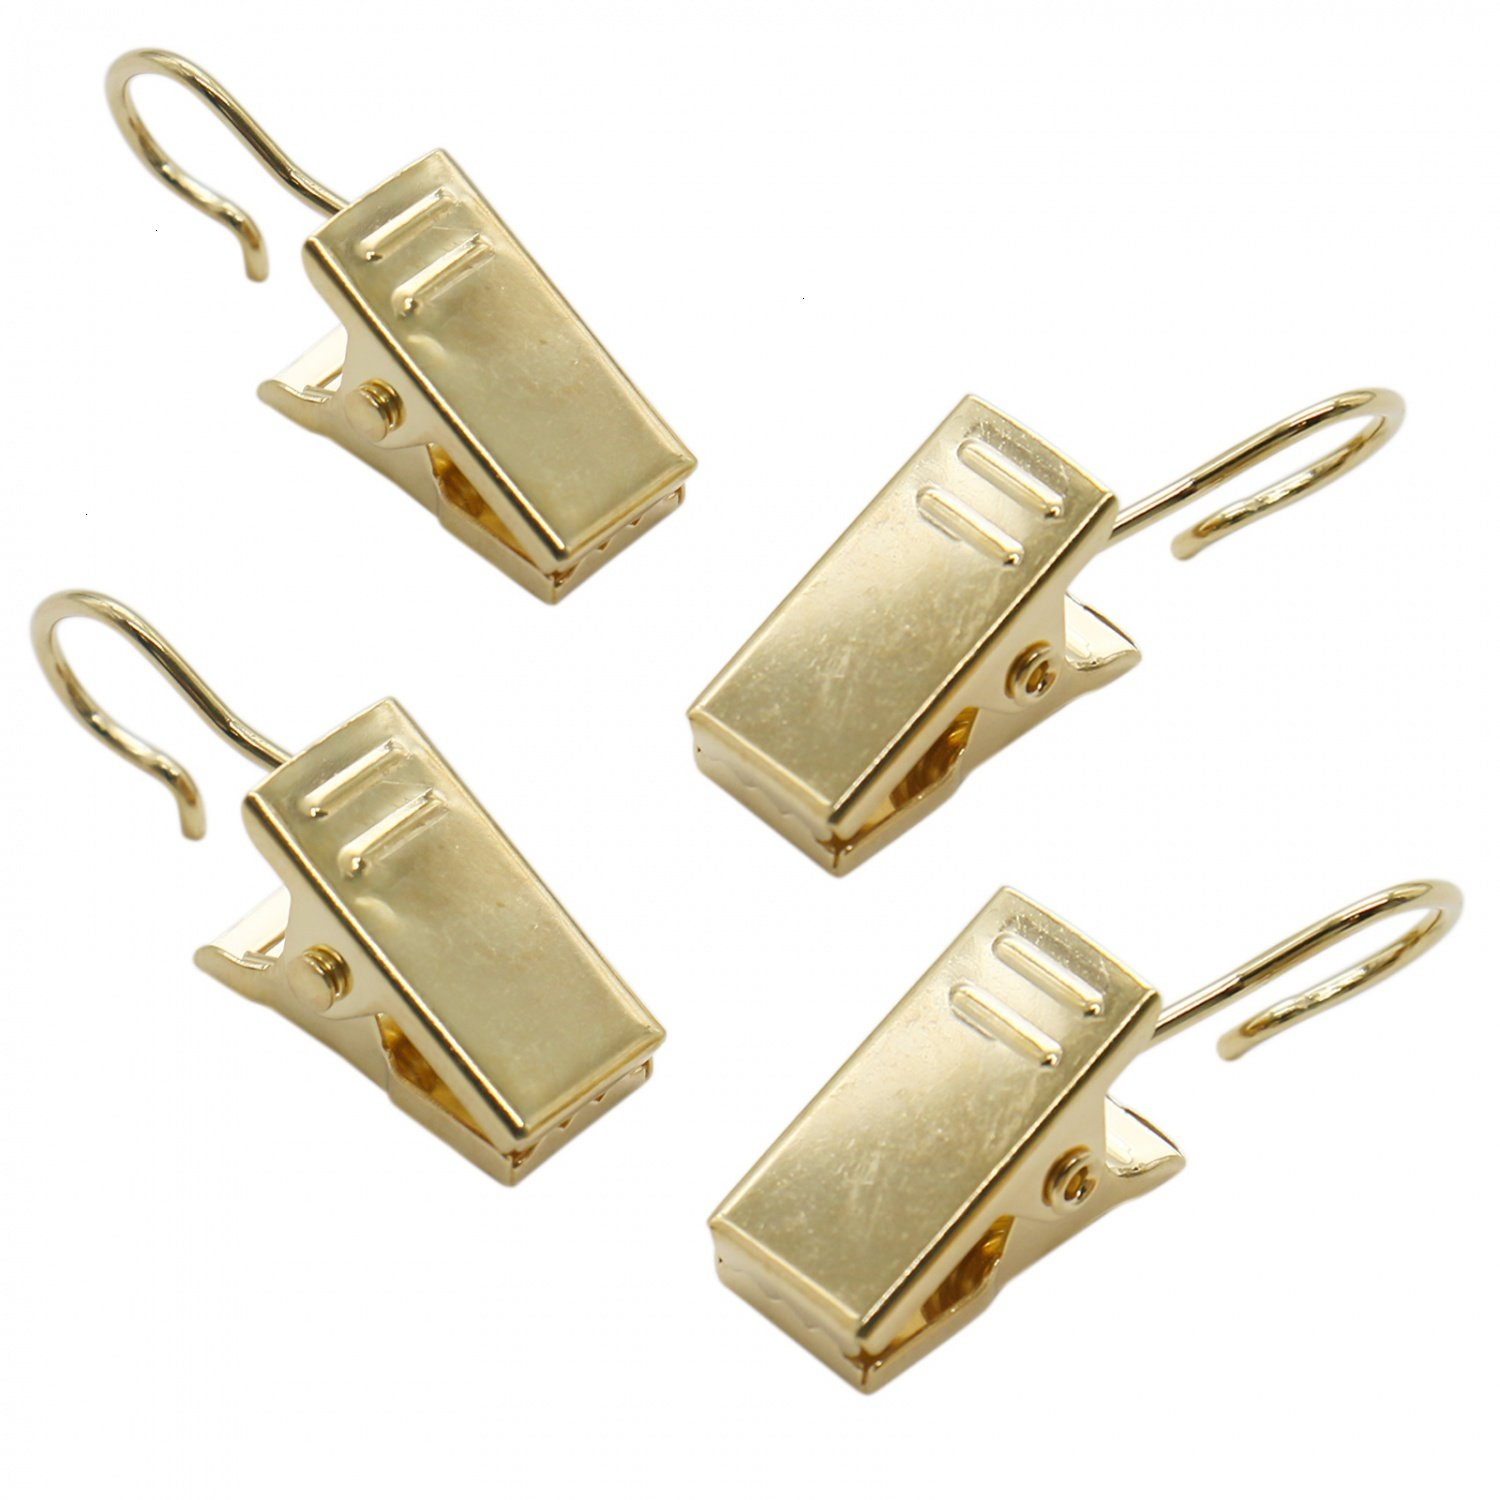 Buorsa 100 Pack Stainless Steel Golden Curtain Clip Small String Party String Lights Hanger Wire Holder for Home Decoration, Pictures, Photos, Art Craft Dispaly and Outdoor Activities Supplies (Gold)